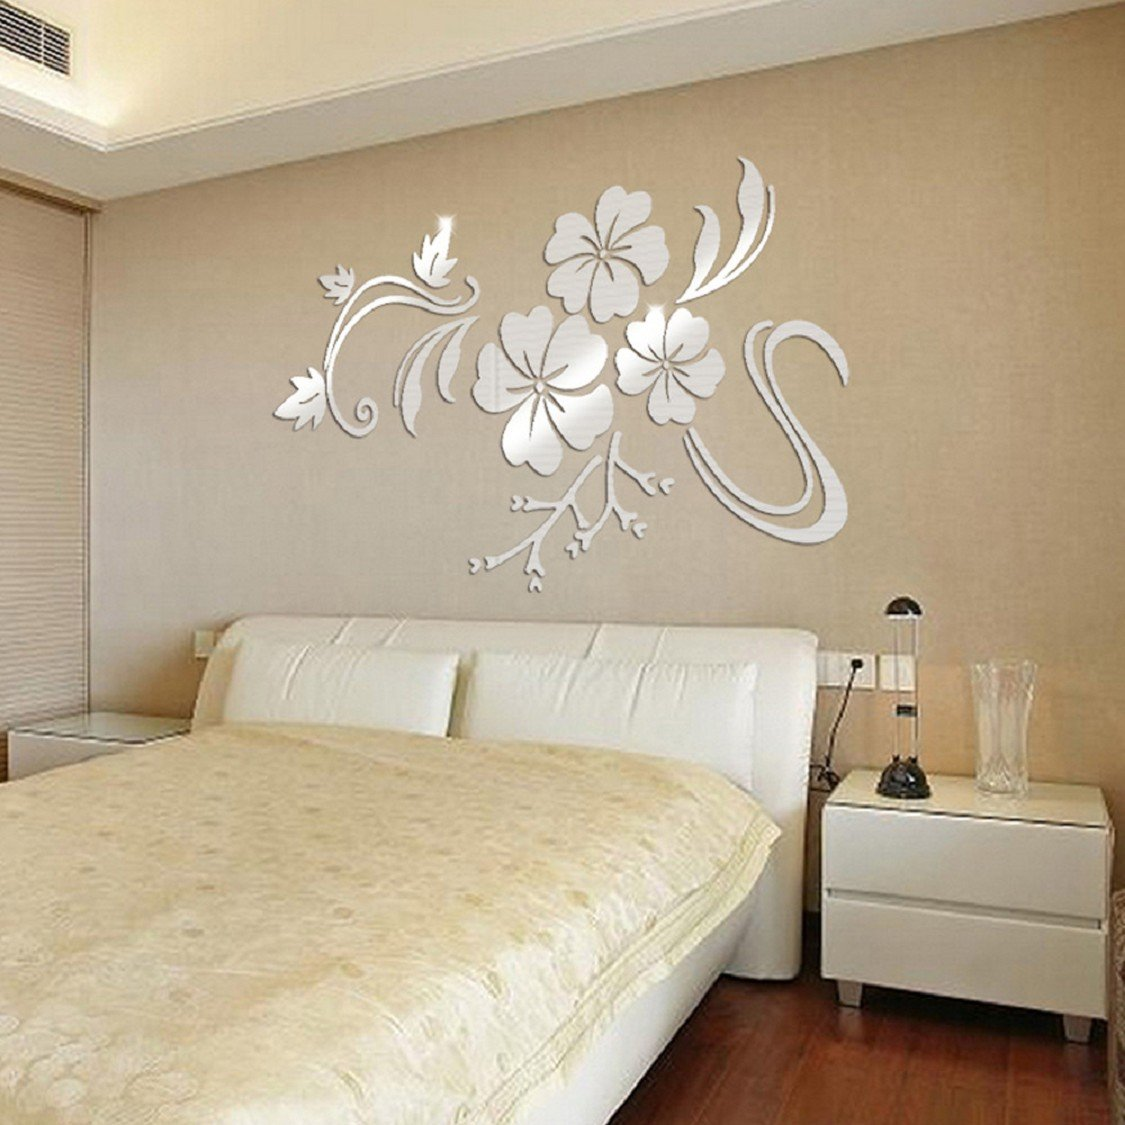 Genial Ikevan 1Set Acrylic Art 3D Mirror Flower Wall Stickers DIY Home Wall Room  Decals Decor Sofa TV Setting Wall Removable Wall Stickers 78X60cm (Sliver)  ...